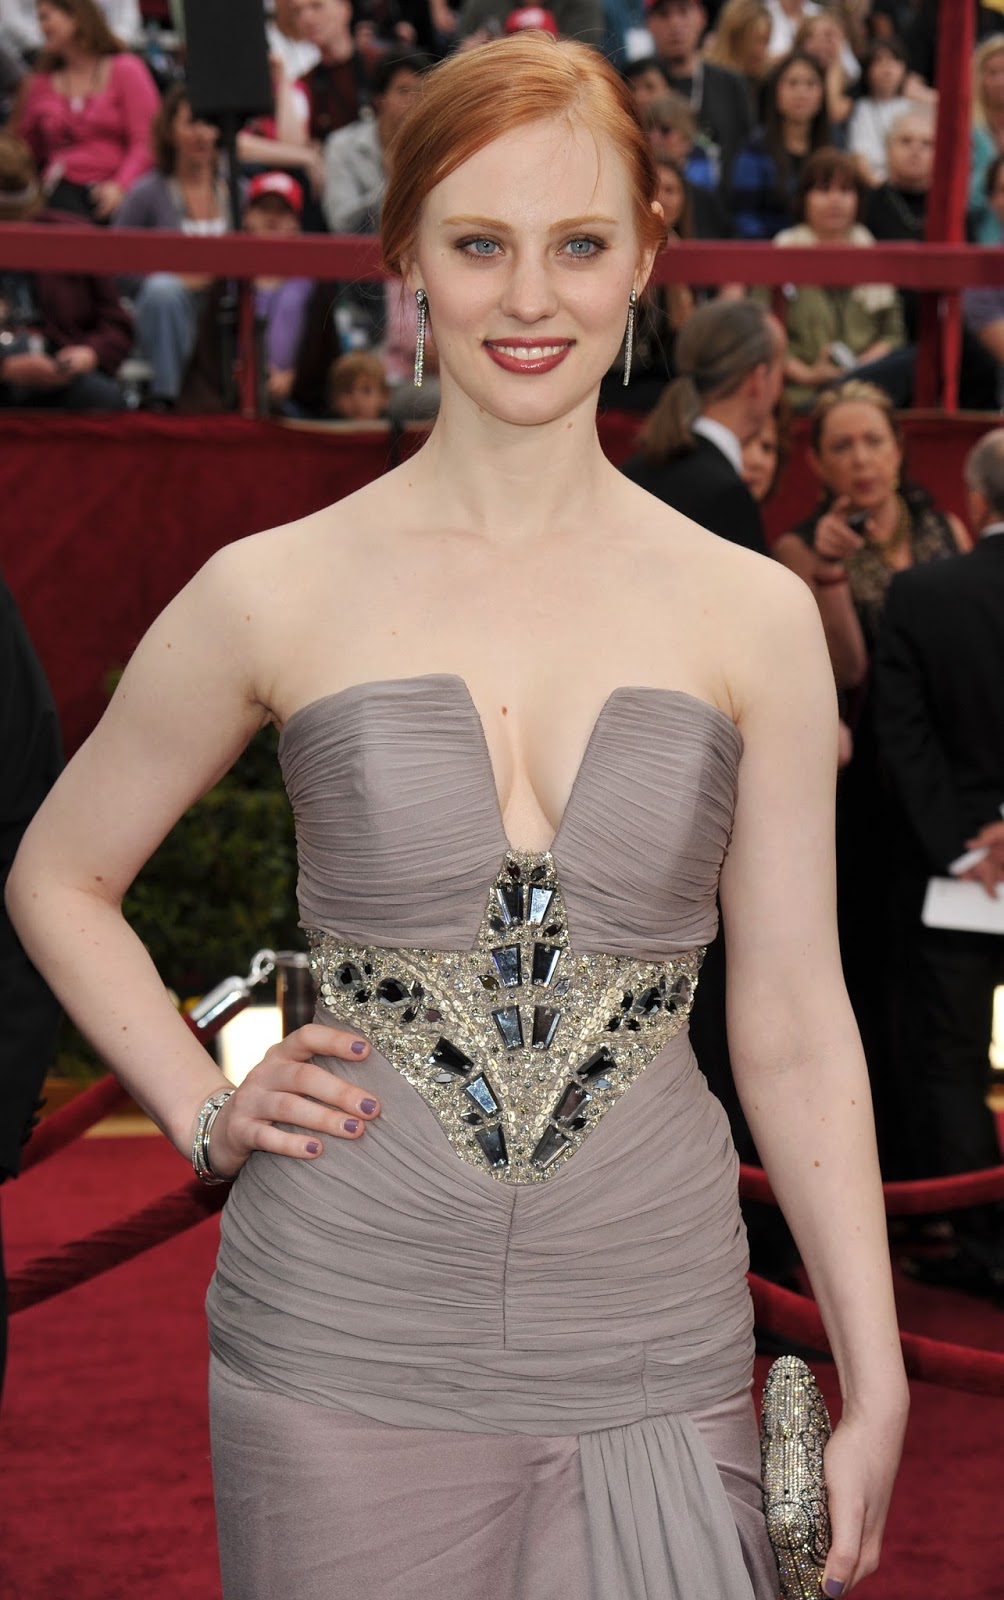 48 Hottest Deborah Ann Woll Bikini Pictures Are Just Too ...